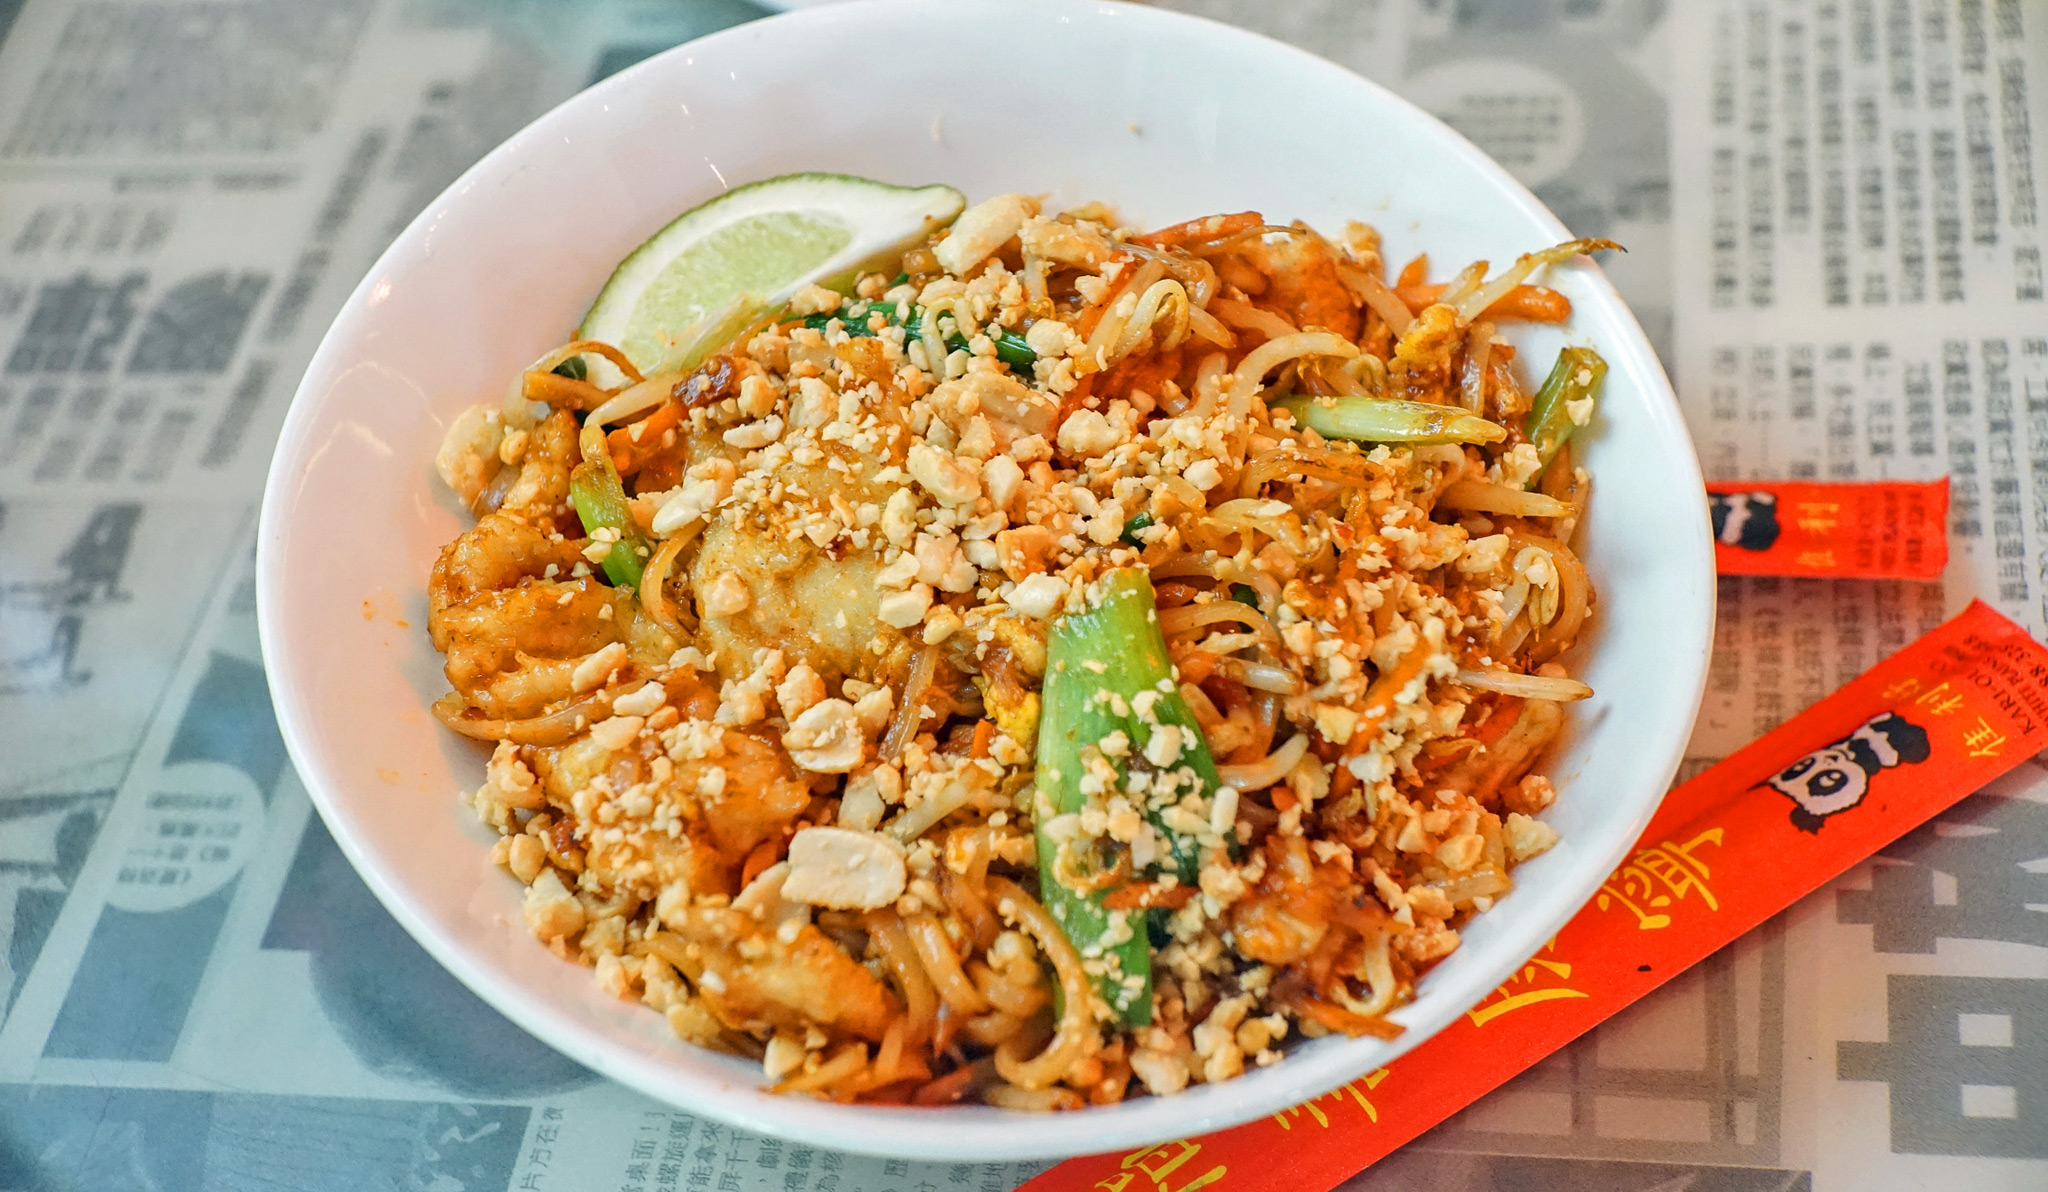 Hawkers Pad Thai - rice noodles, shrimp, chicken, eggs, bean sprouts, carrots, scallions, red chili pepper, roasted peanuts, lime